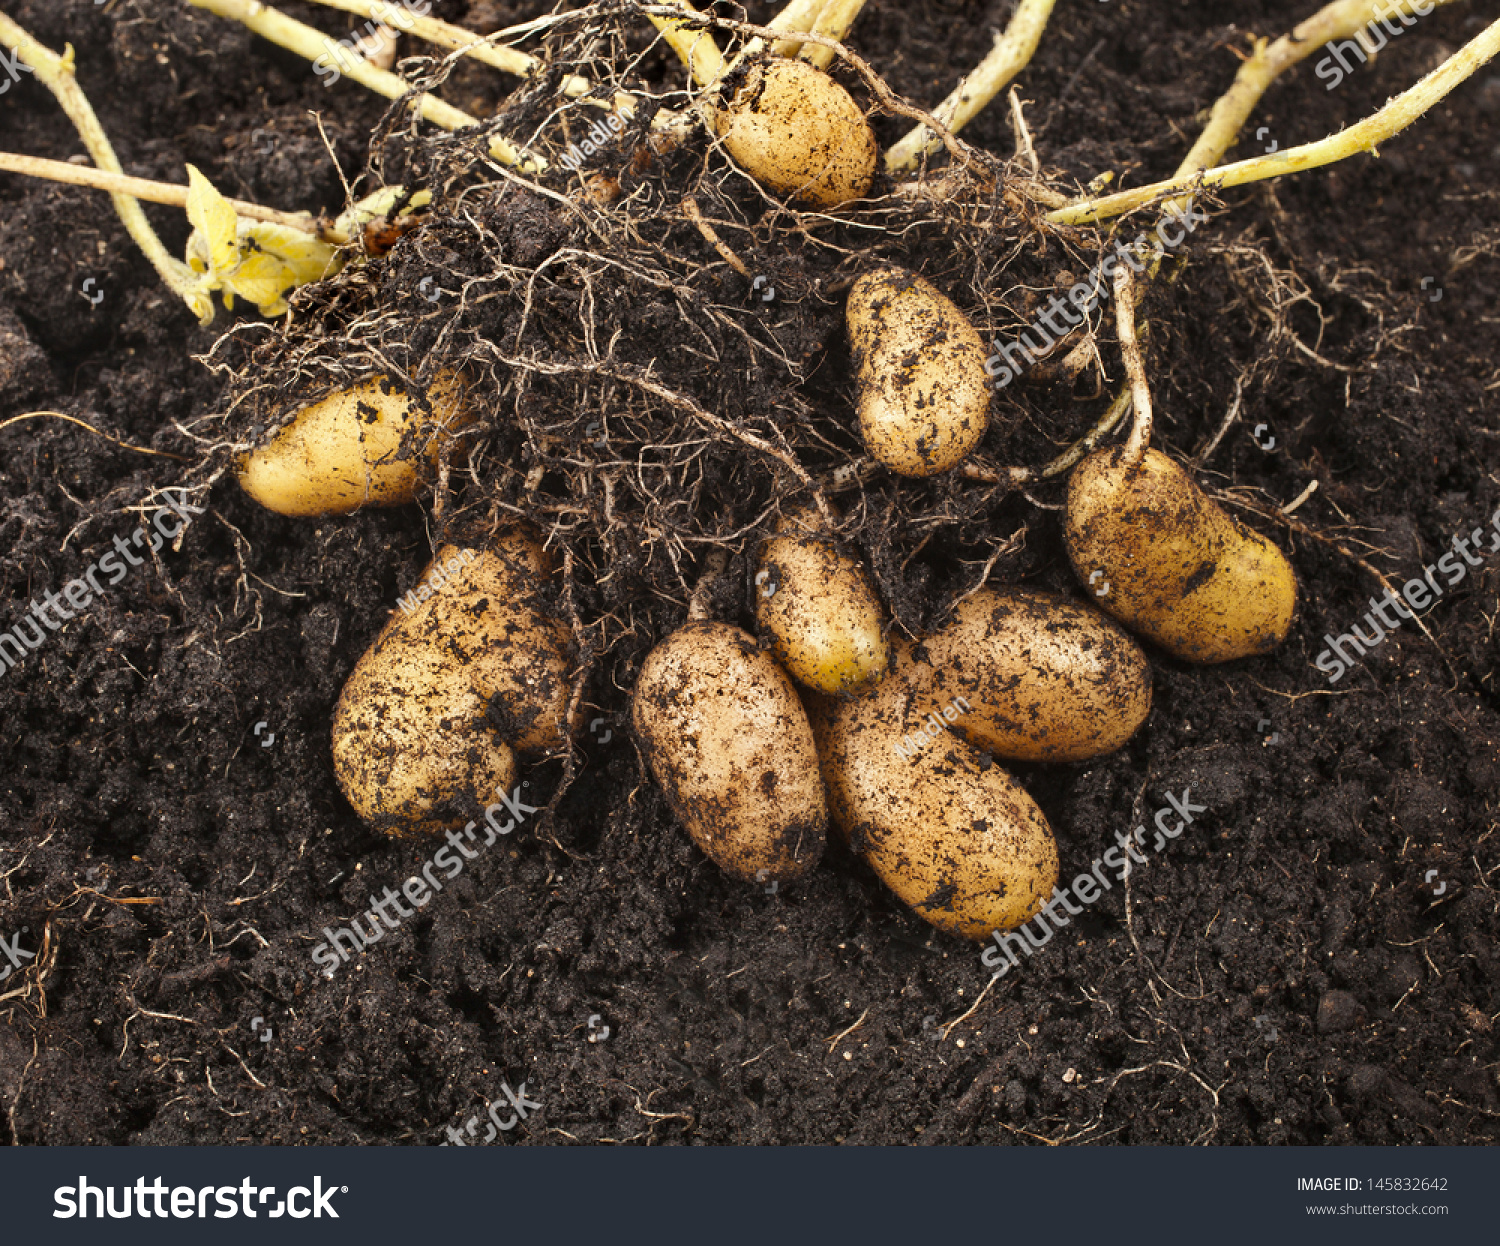 how to prepare soil for potatoes